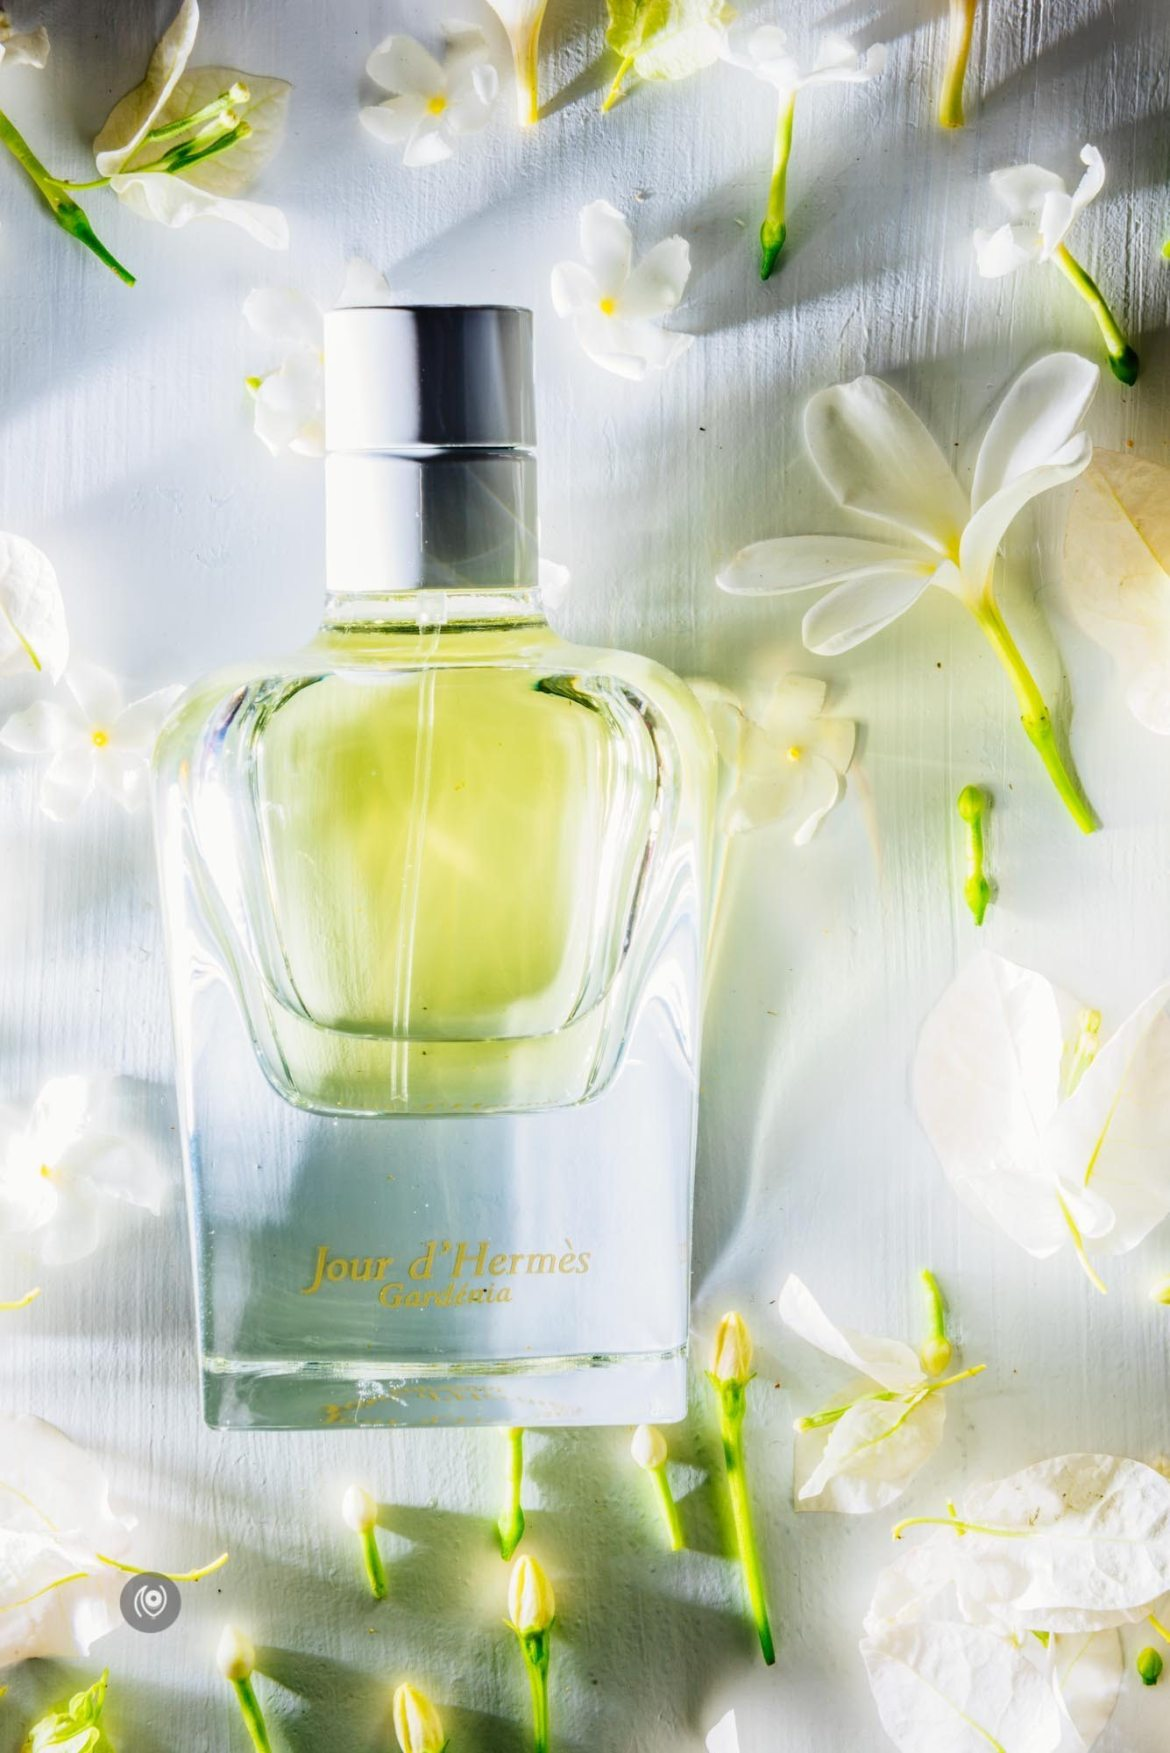 FragranceOfTheMonth-Naina.co-Jour-Hermes-Gardenia-EyesForLuxury-12